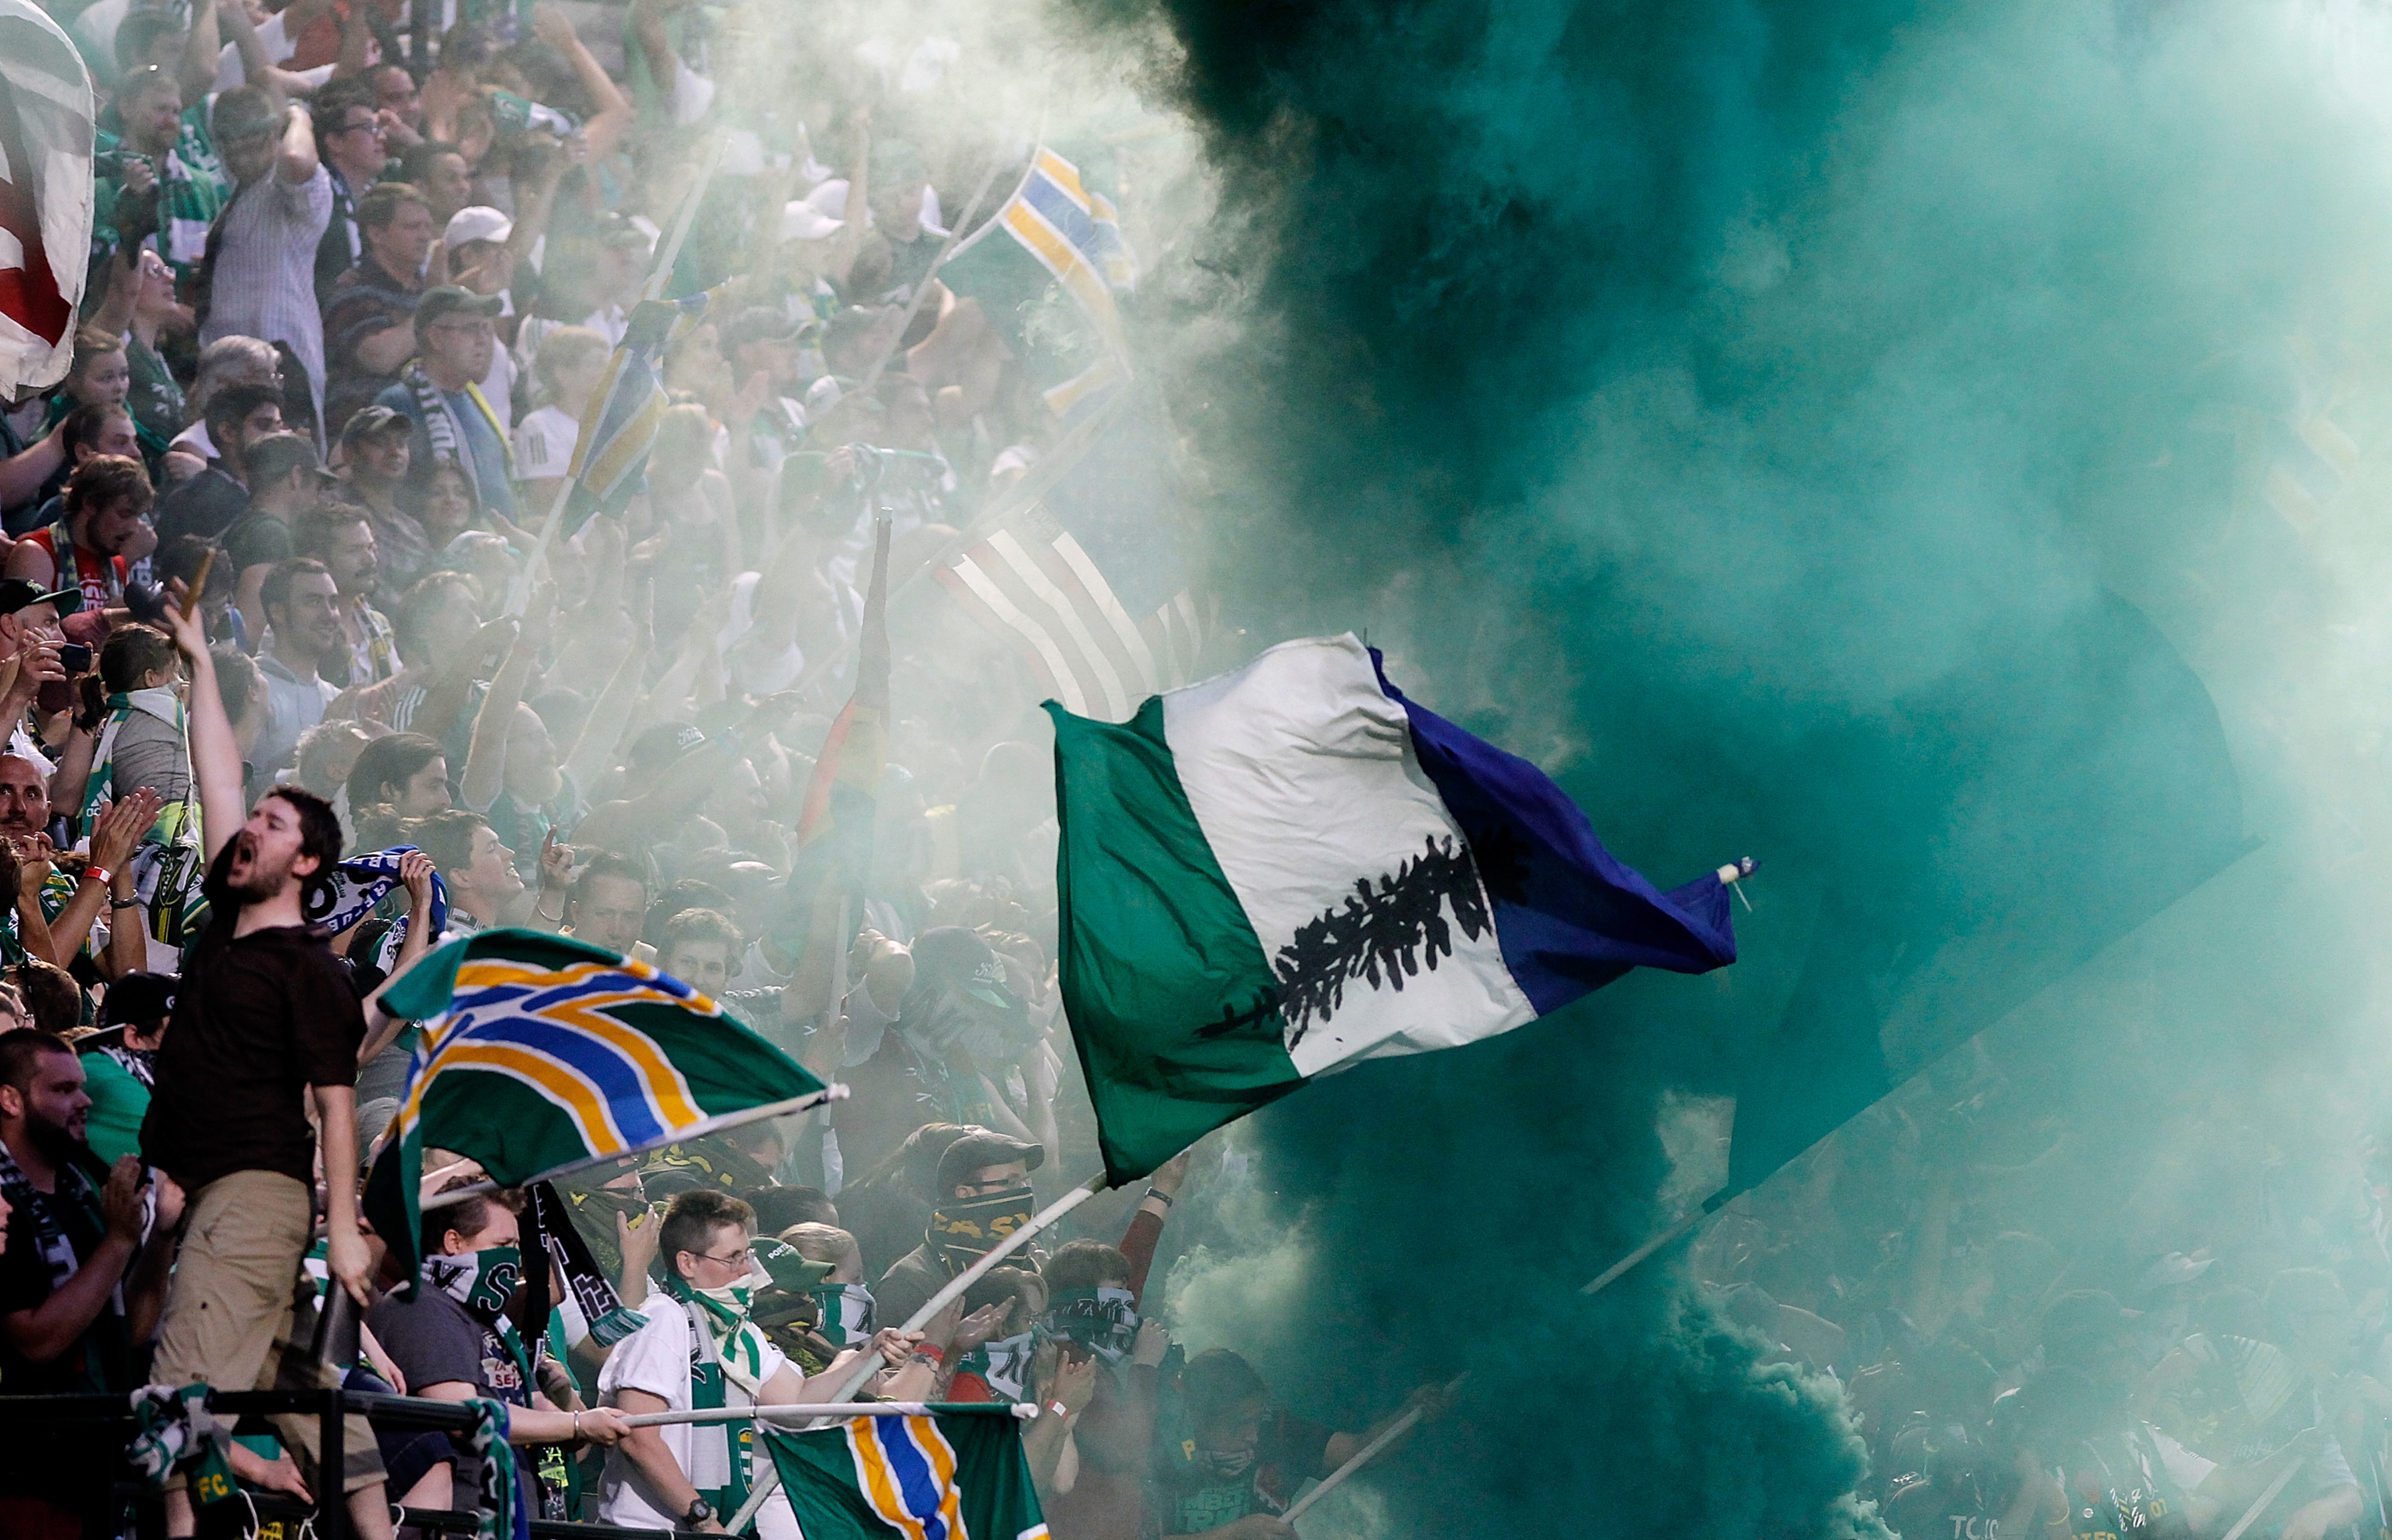 PORTLAND, OR - JULY 14:  Fans of the Portland Timbers celebrate a goal against the Los Angeles Galaxy on July 14, 2012 at Jeld-Wen Field in Portland, Oregon.  (Photo by Jonathan Ferrey/Getty Images)